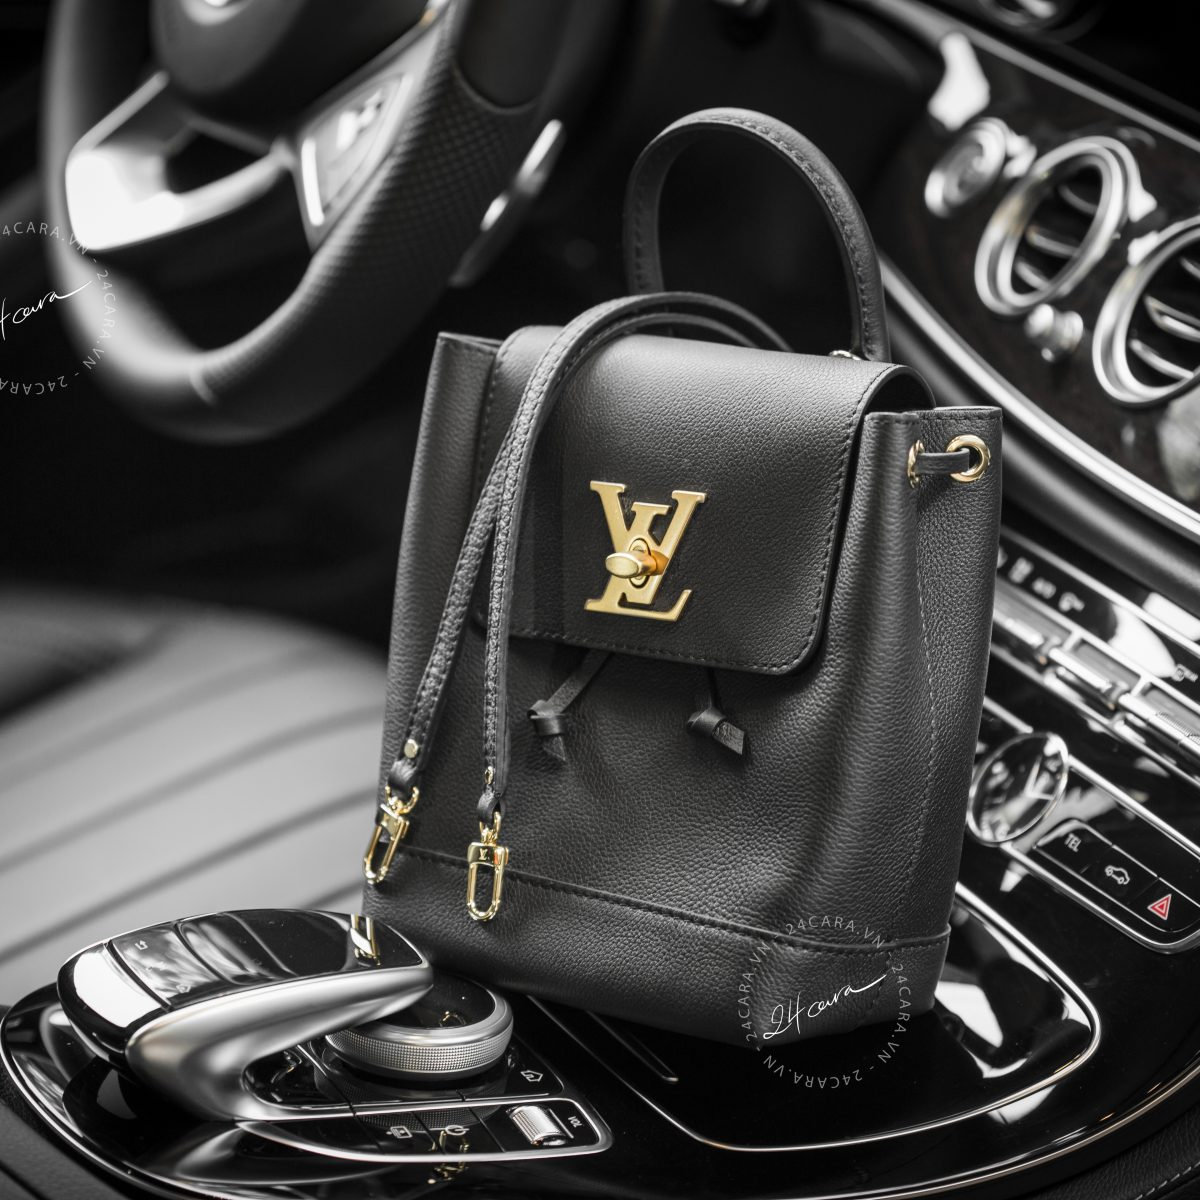 LOUIS VUITTON 'LOOKME' BACKPACK MINI